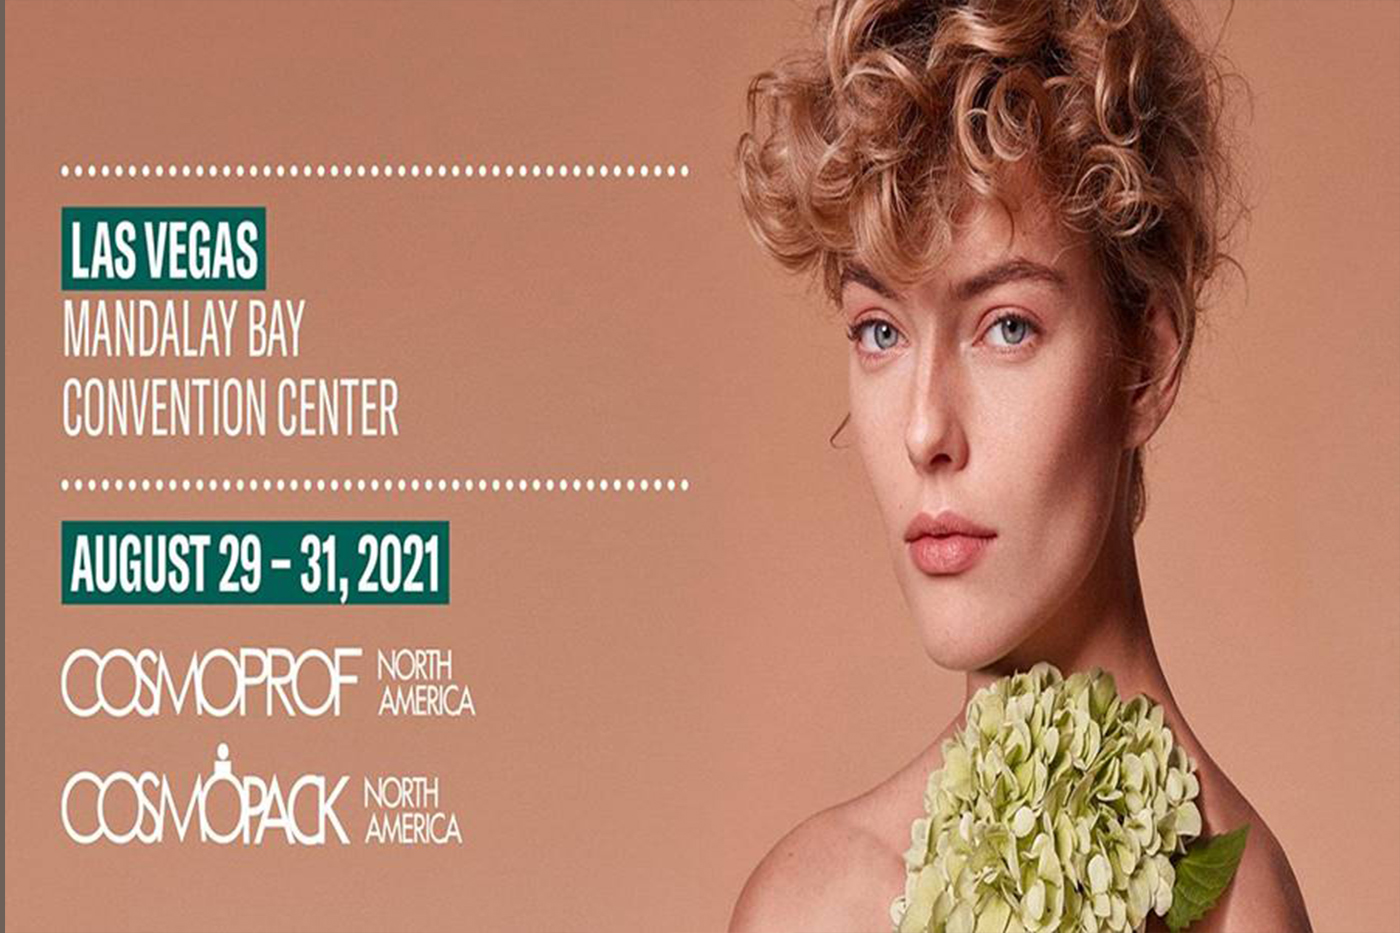 Comoprof North America scheduled from 29th – 31st August in Las Vegas